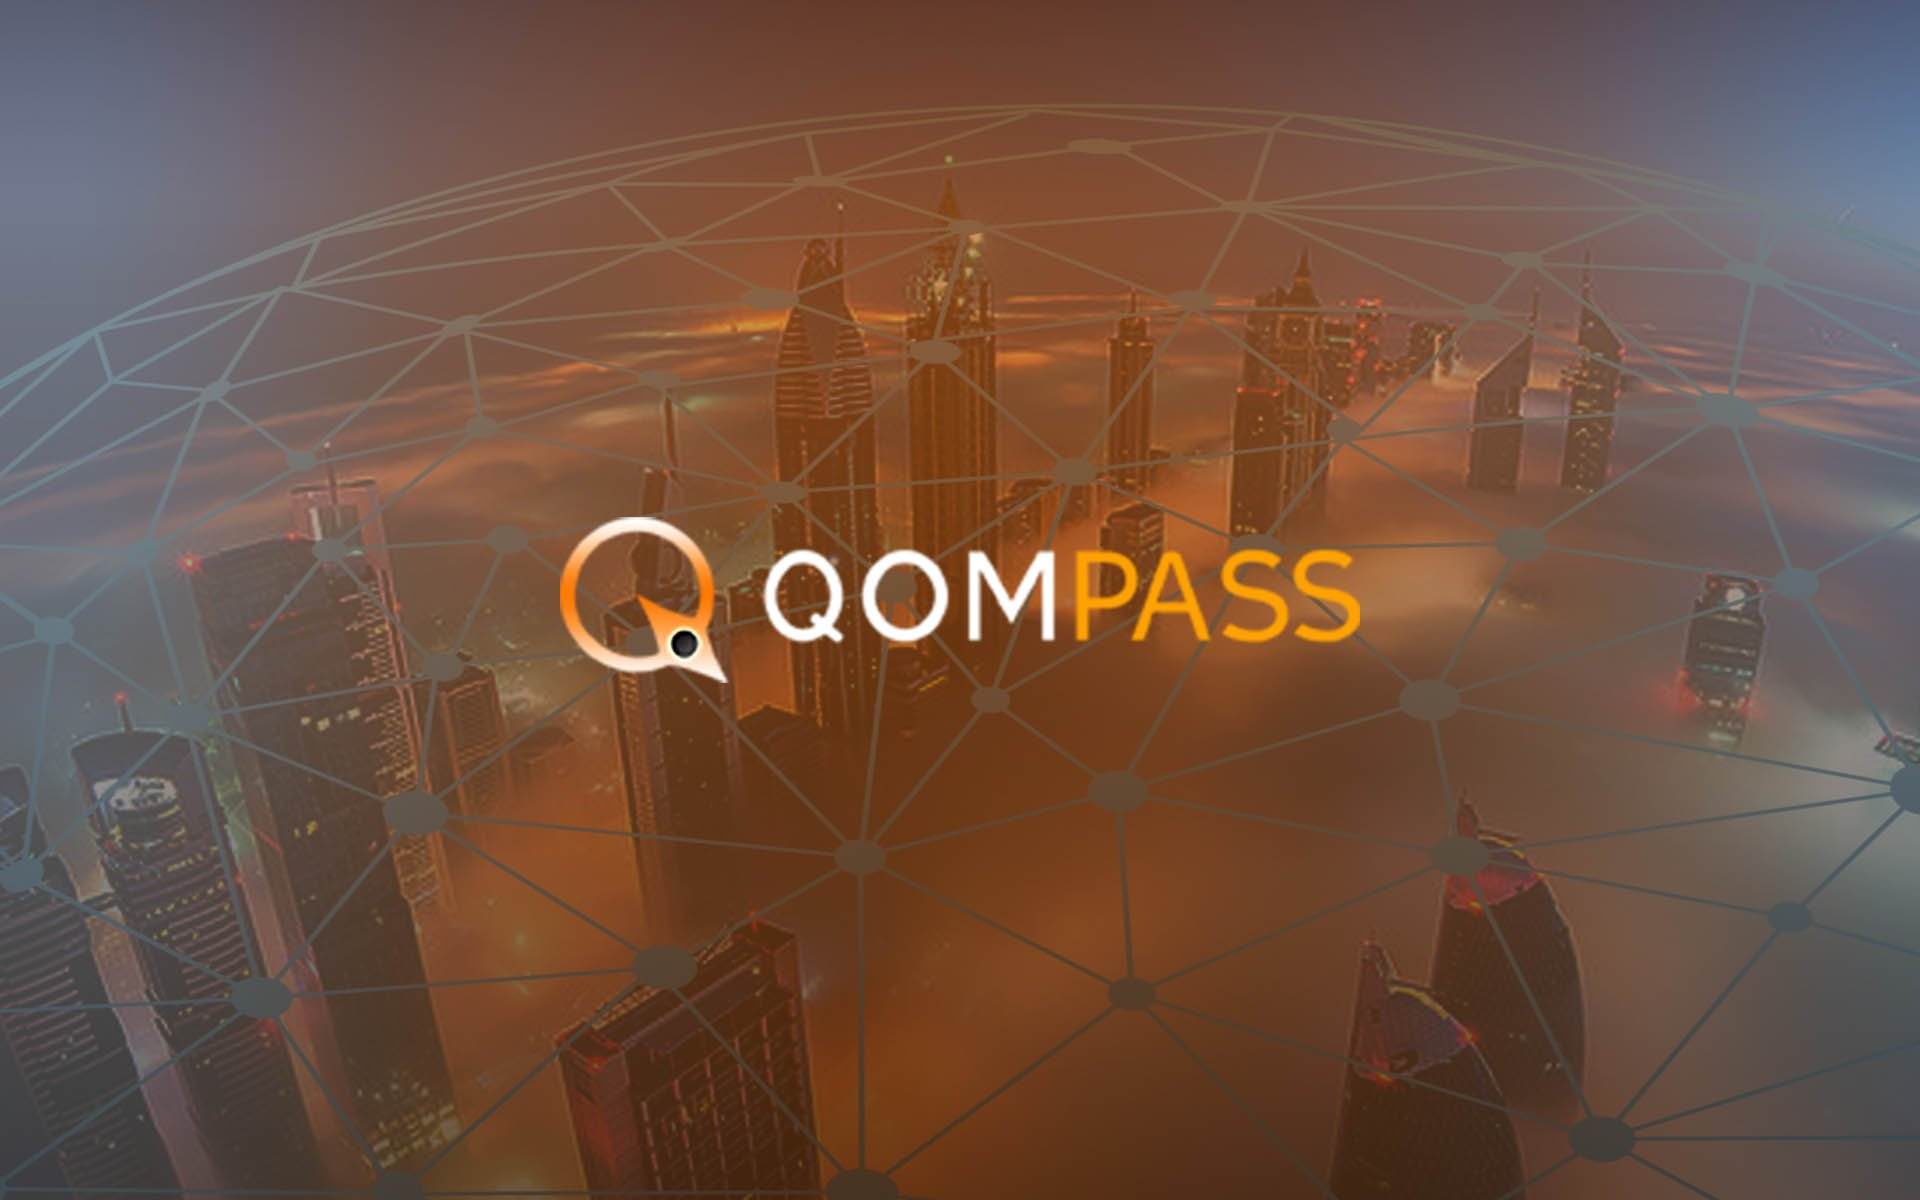 Qompass Announces Airdrop Ahead of Their ICO Pre-Sale Setting The Stage For A Buying Frenzy As They Launch Revolutionary Blockchain Applications & API With Unique User Benefits